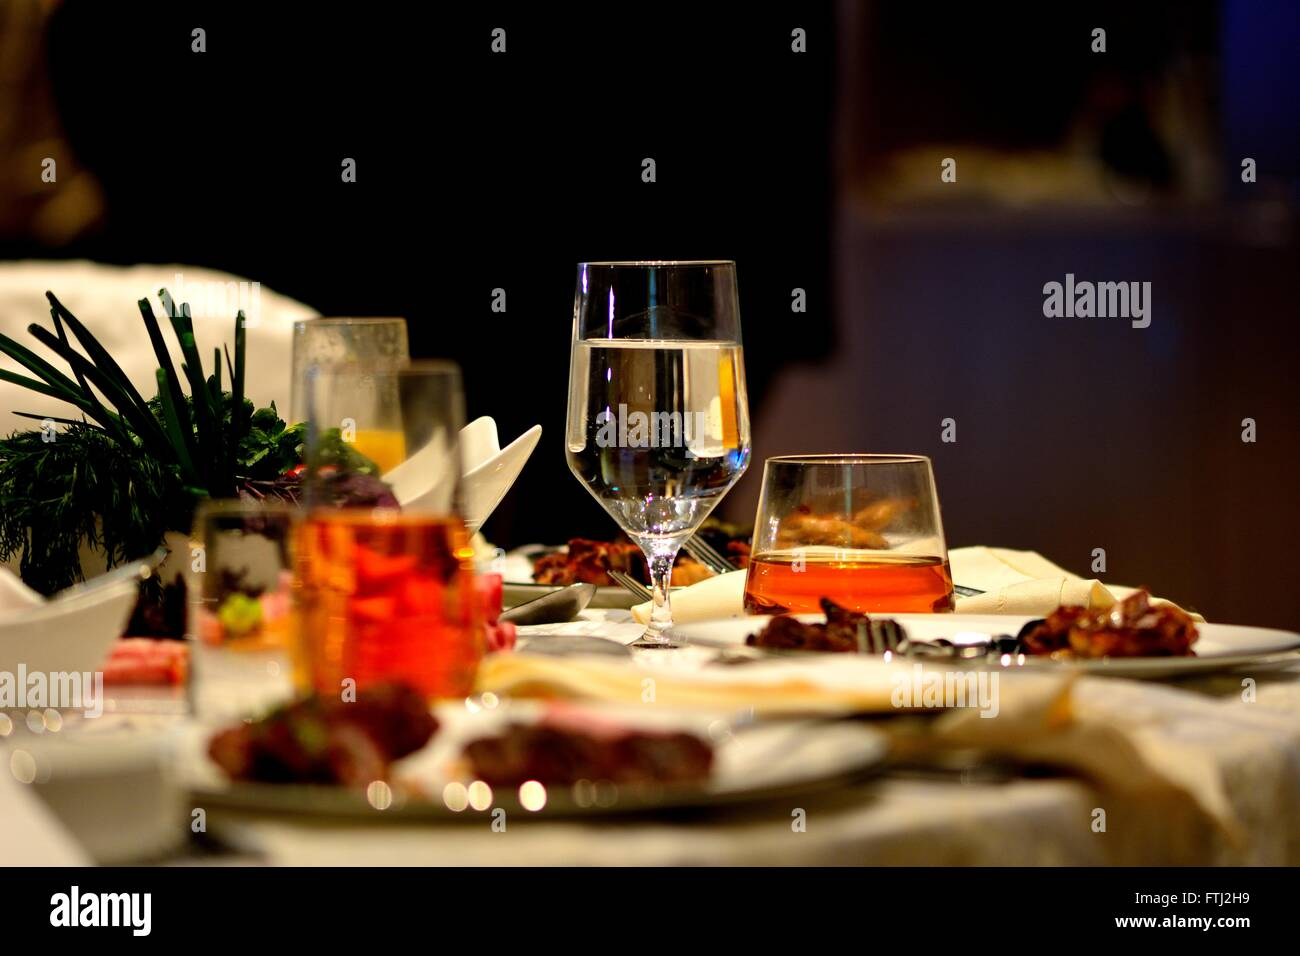 Azerbaijani wedding feast. Food and drink on a wedding table in Azerbaijan, including water, whiskey and food - Stock Image